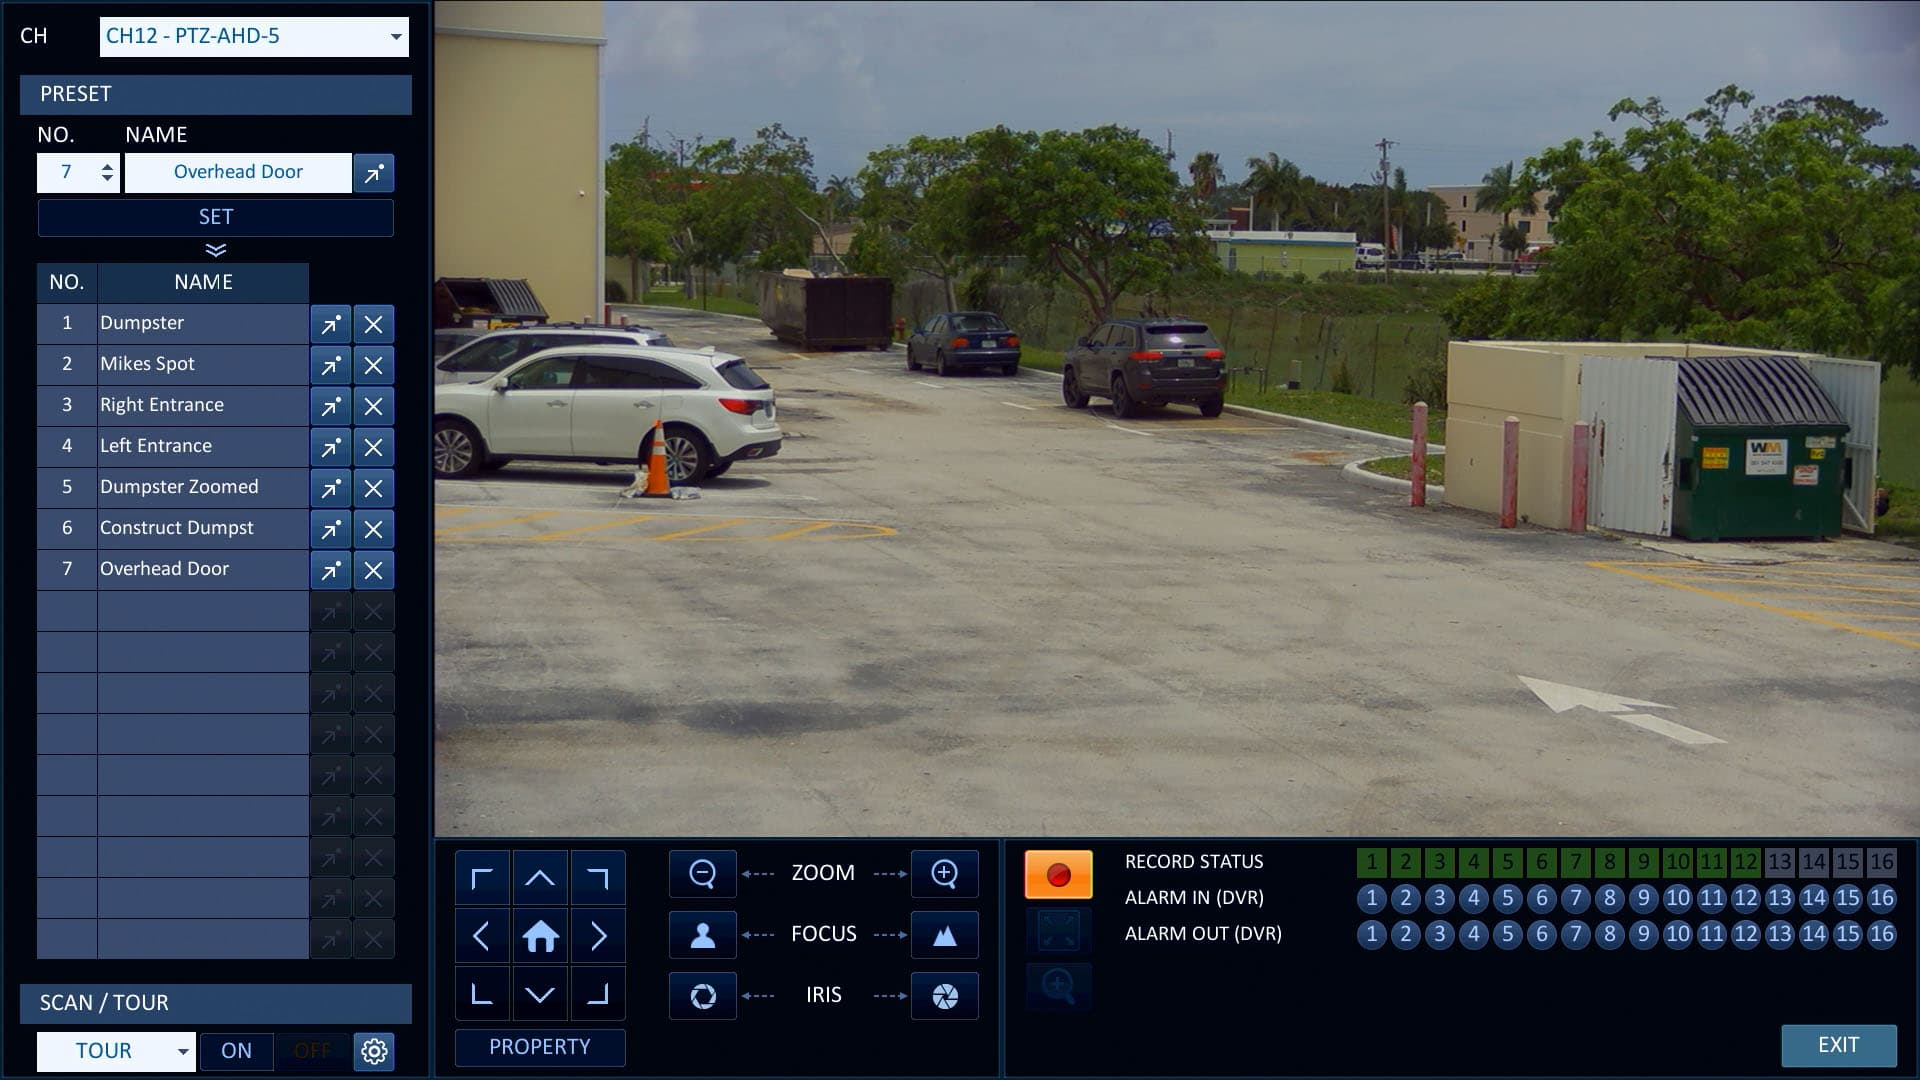 Ptz Camera Controller Setup Cctv 6 Pin Din Wiring Diagram Hd Controls From Idvr Pro Surveillance Dvr